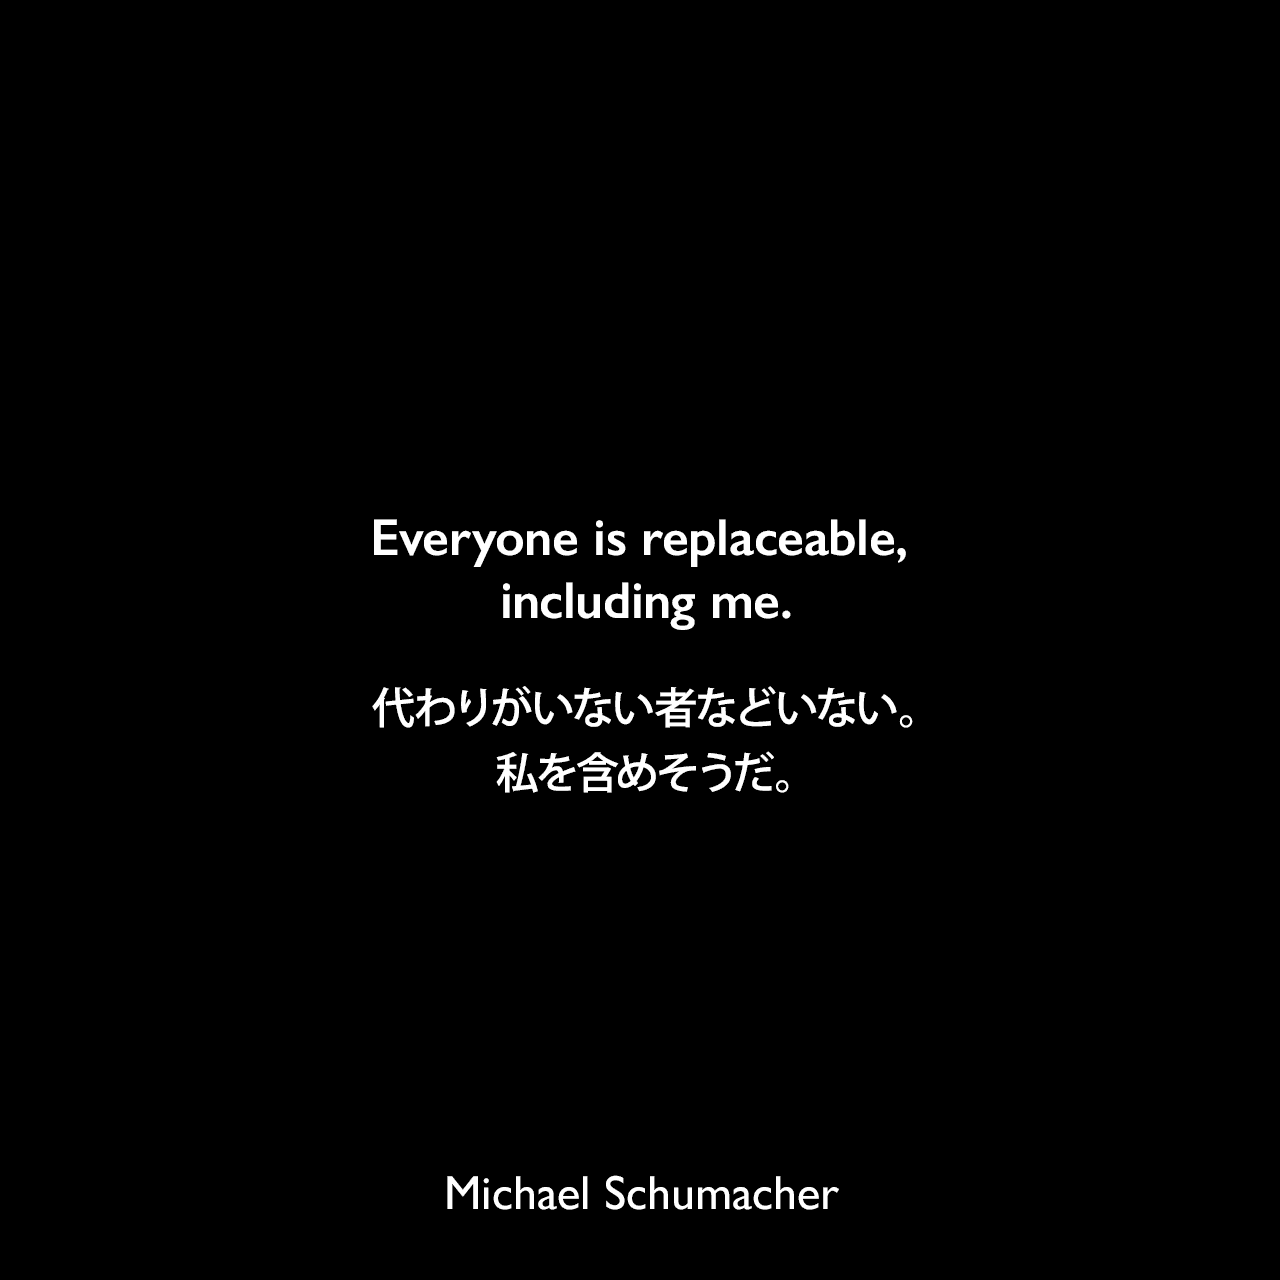 Everyone is replaceable, including me.代わりがいない者などいない。私を含めそうだ。Michael Schumacher